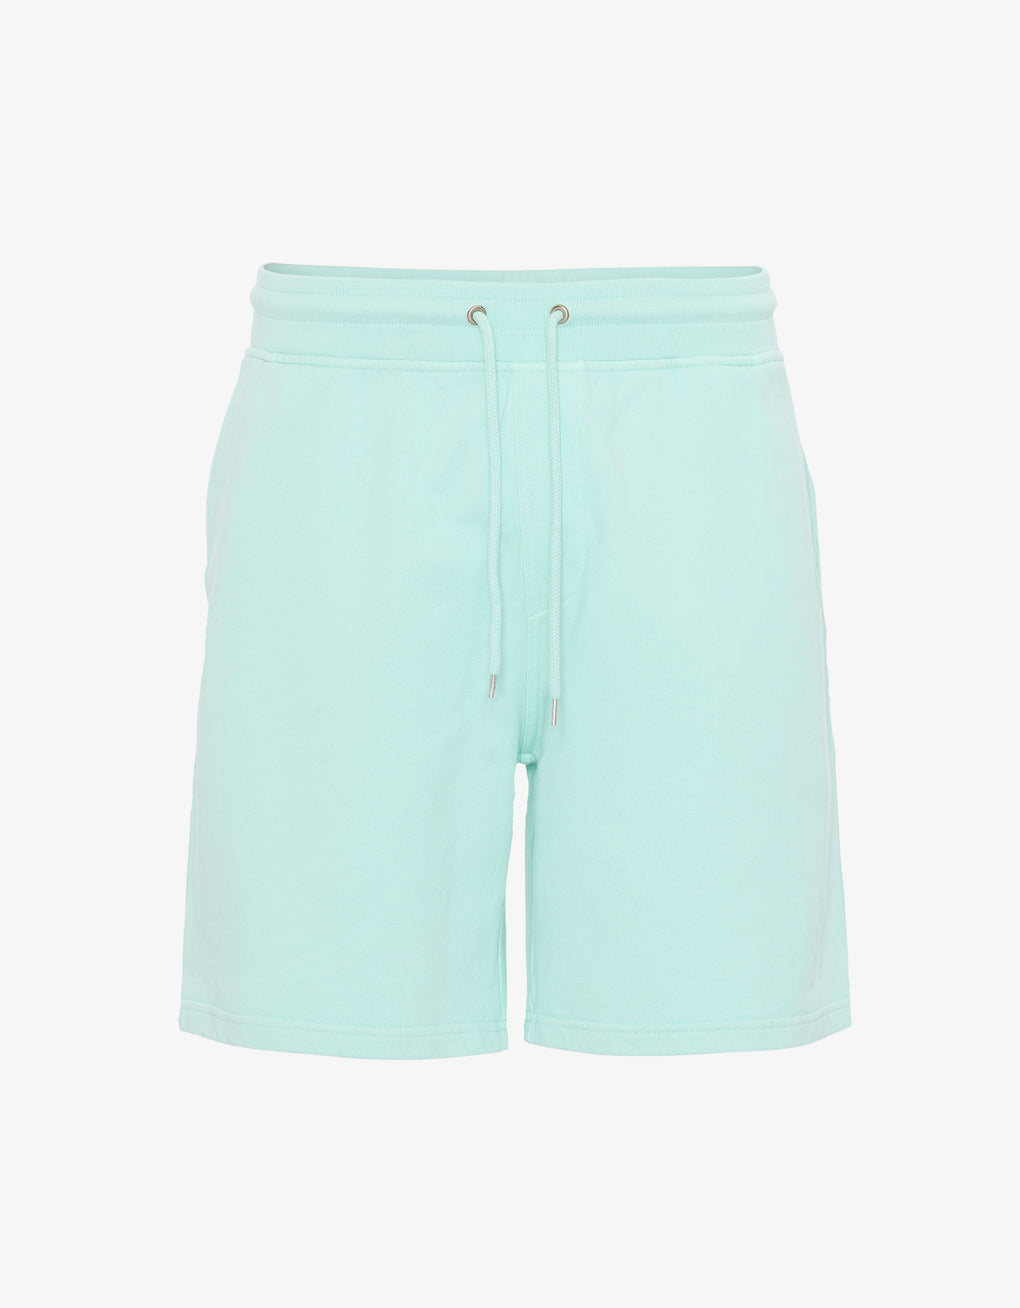 Colorful Standard Classic Organic Sweatshorts Shorts Light Aqua